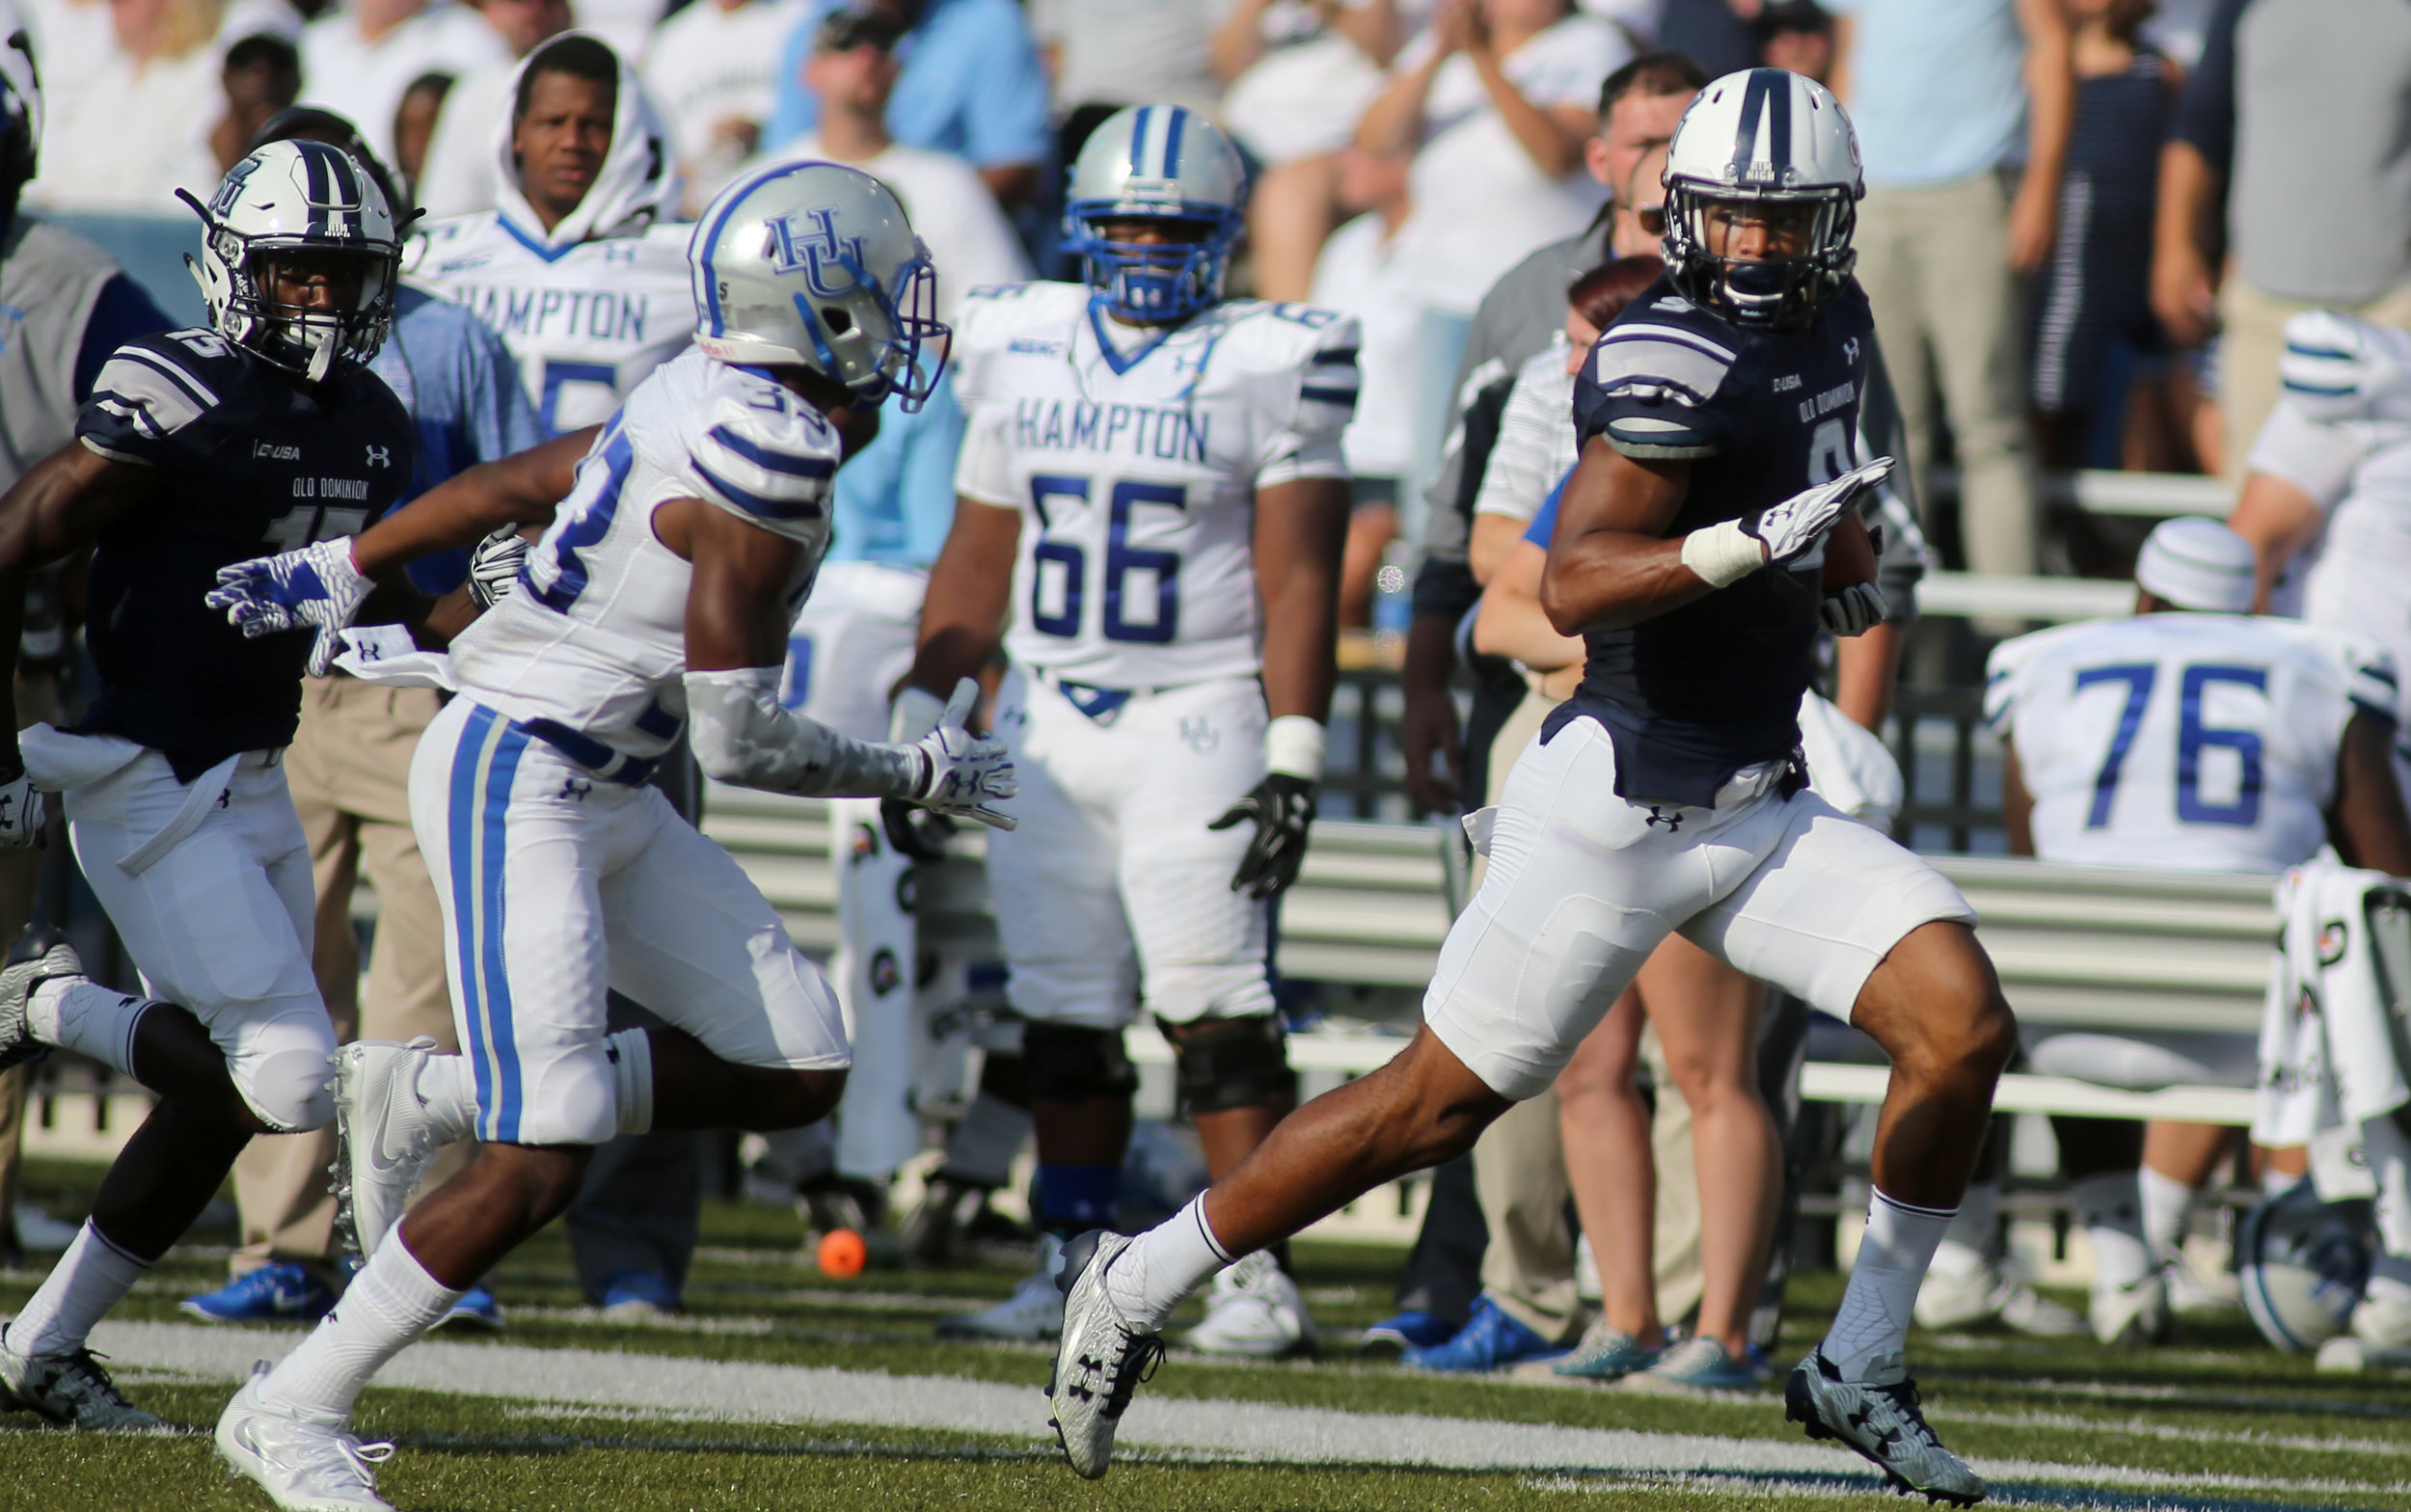 Old Dominion's Jonathan Duhart runs for a third quarter gain past Hampton's Dereon Carr during ODU's 54-21 win, Sunday, Sept. 4, 2016 at Foreman Field in Norfolk.   (Jason Hirschfeld | The Virginian-Pilot)